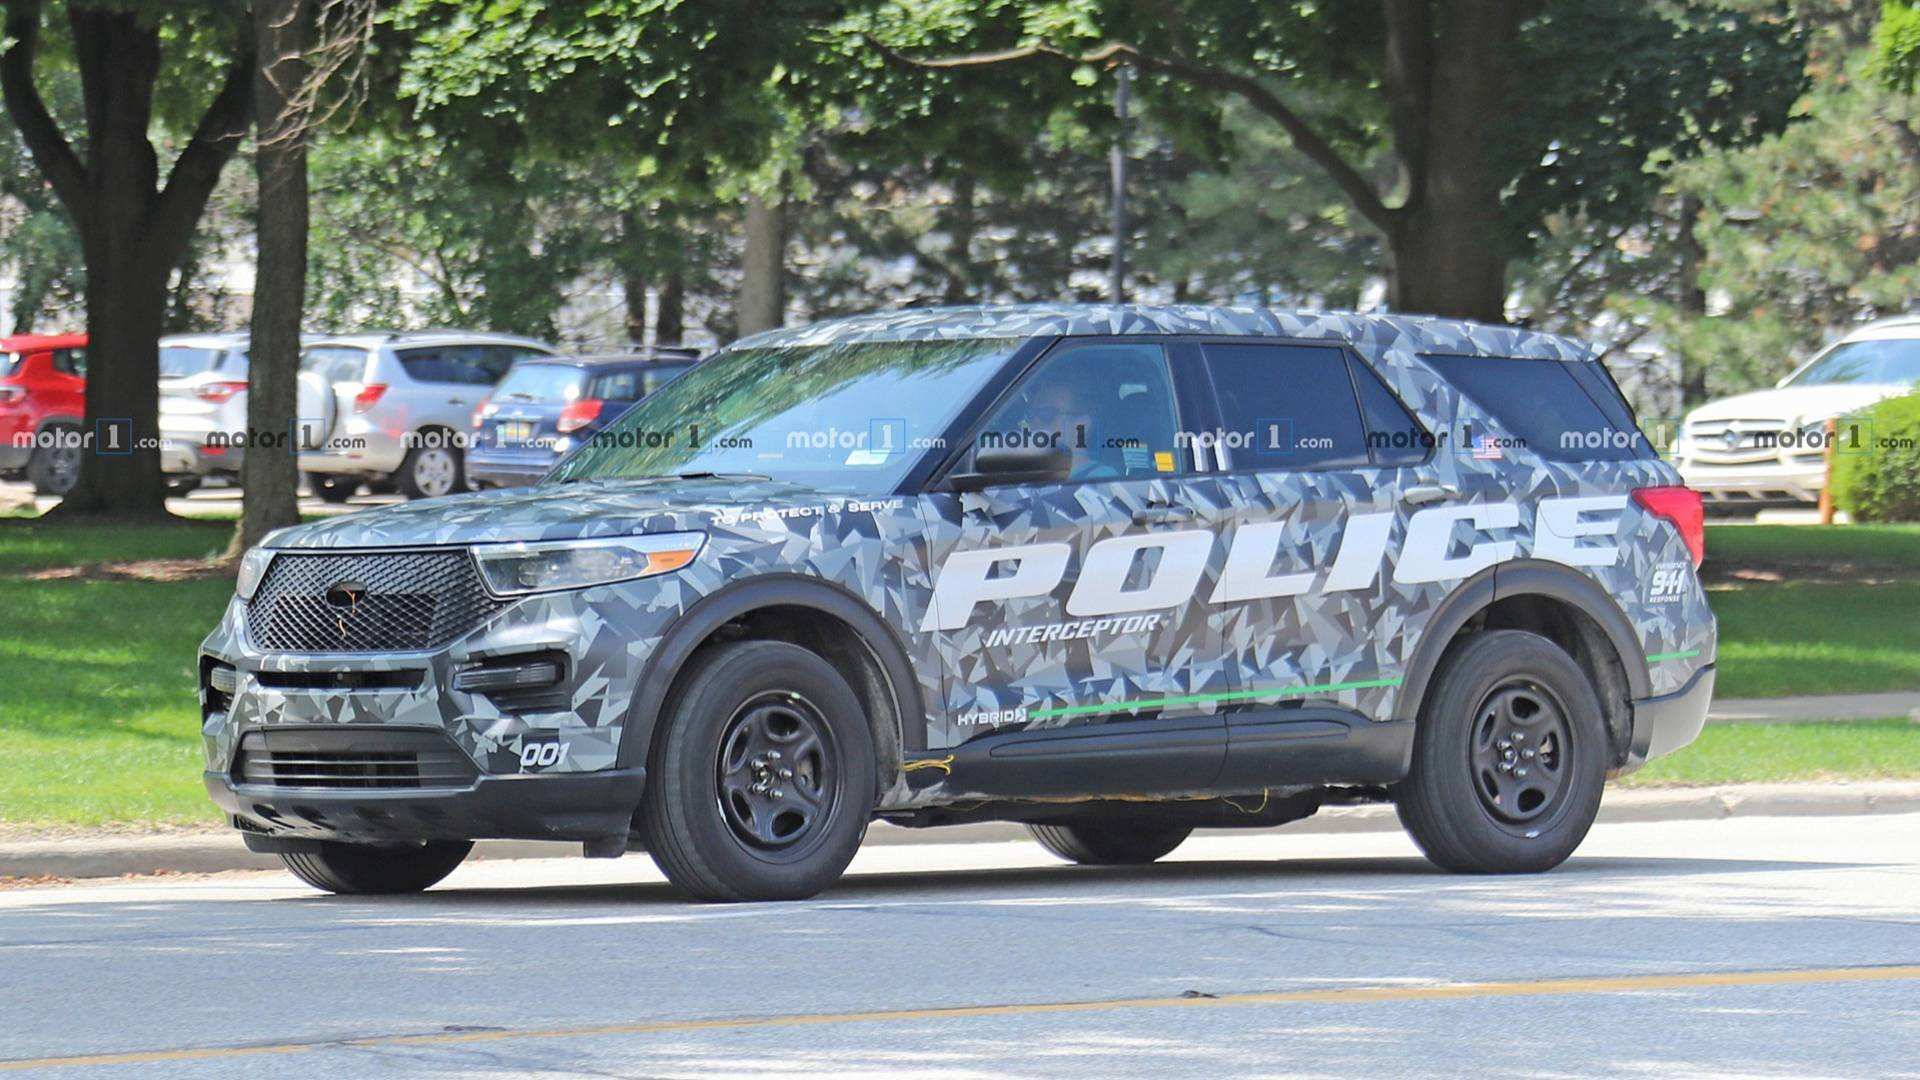 34 Gallery of 2020 Ford Police Interceptor Photos with 2020 Ford Police Interceptor